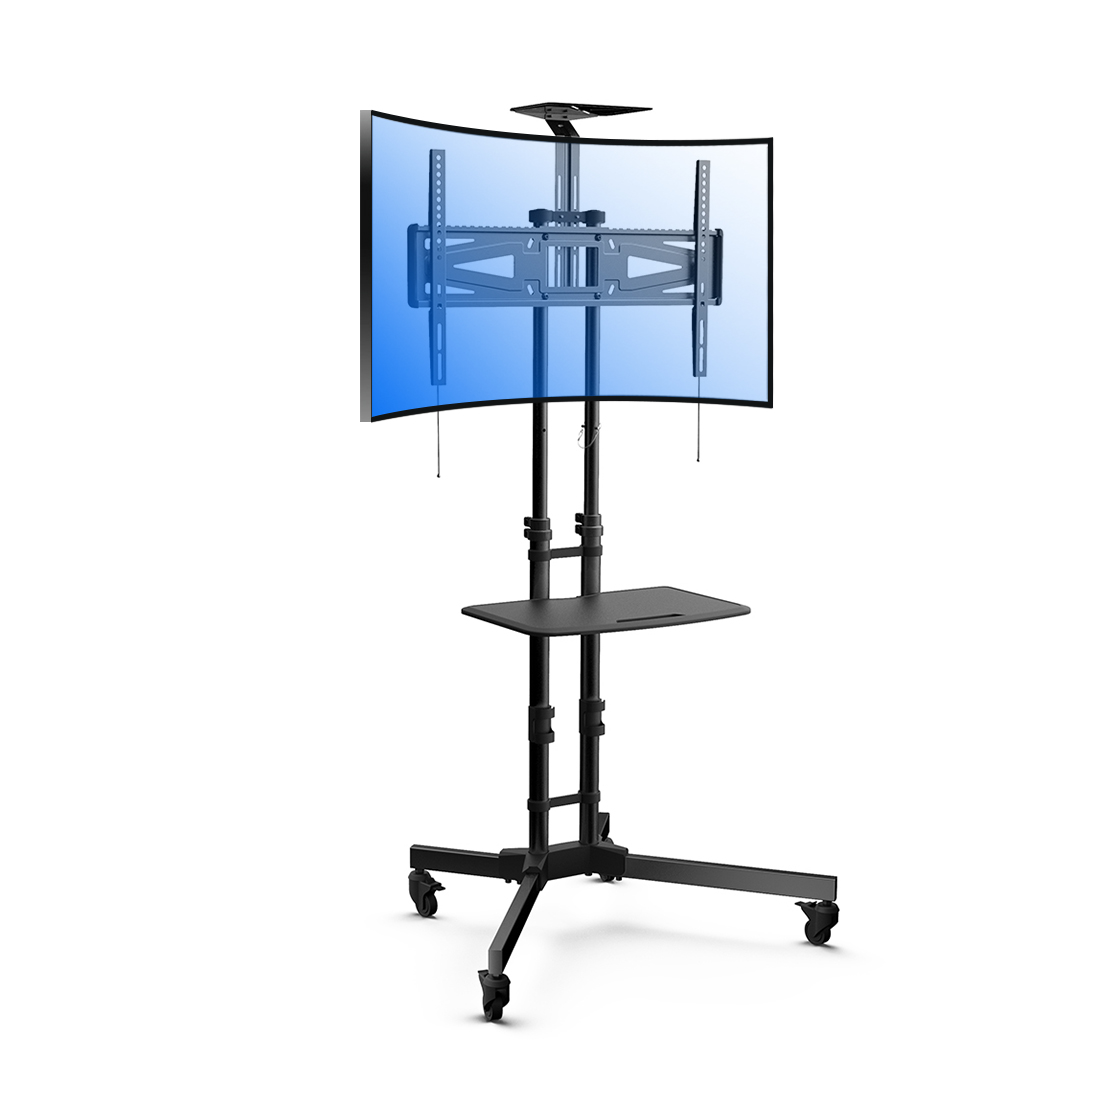 LOCTEK P3R UNIVERSAL MOBILE CURVED TV CART TV STAND FOR LED, LCD, PLASMA(32''-65'' , 88LBS)